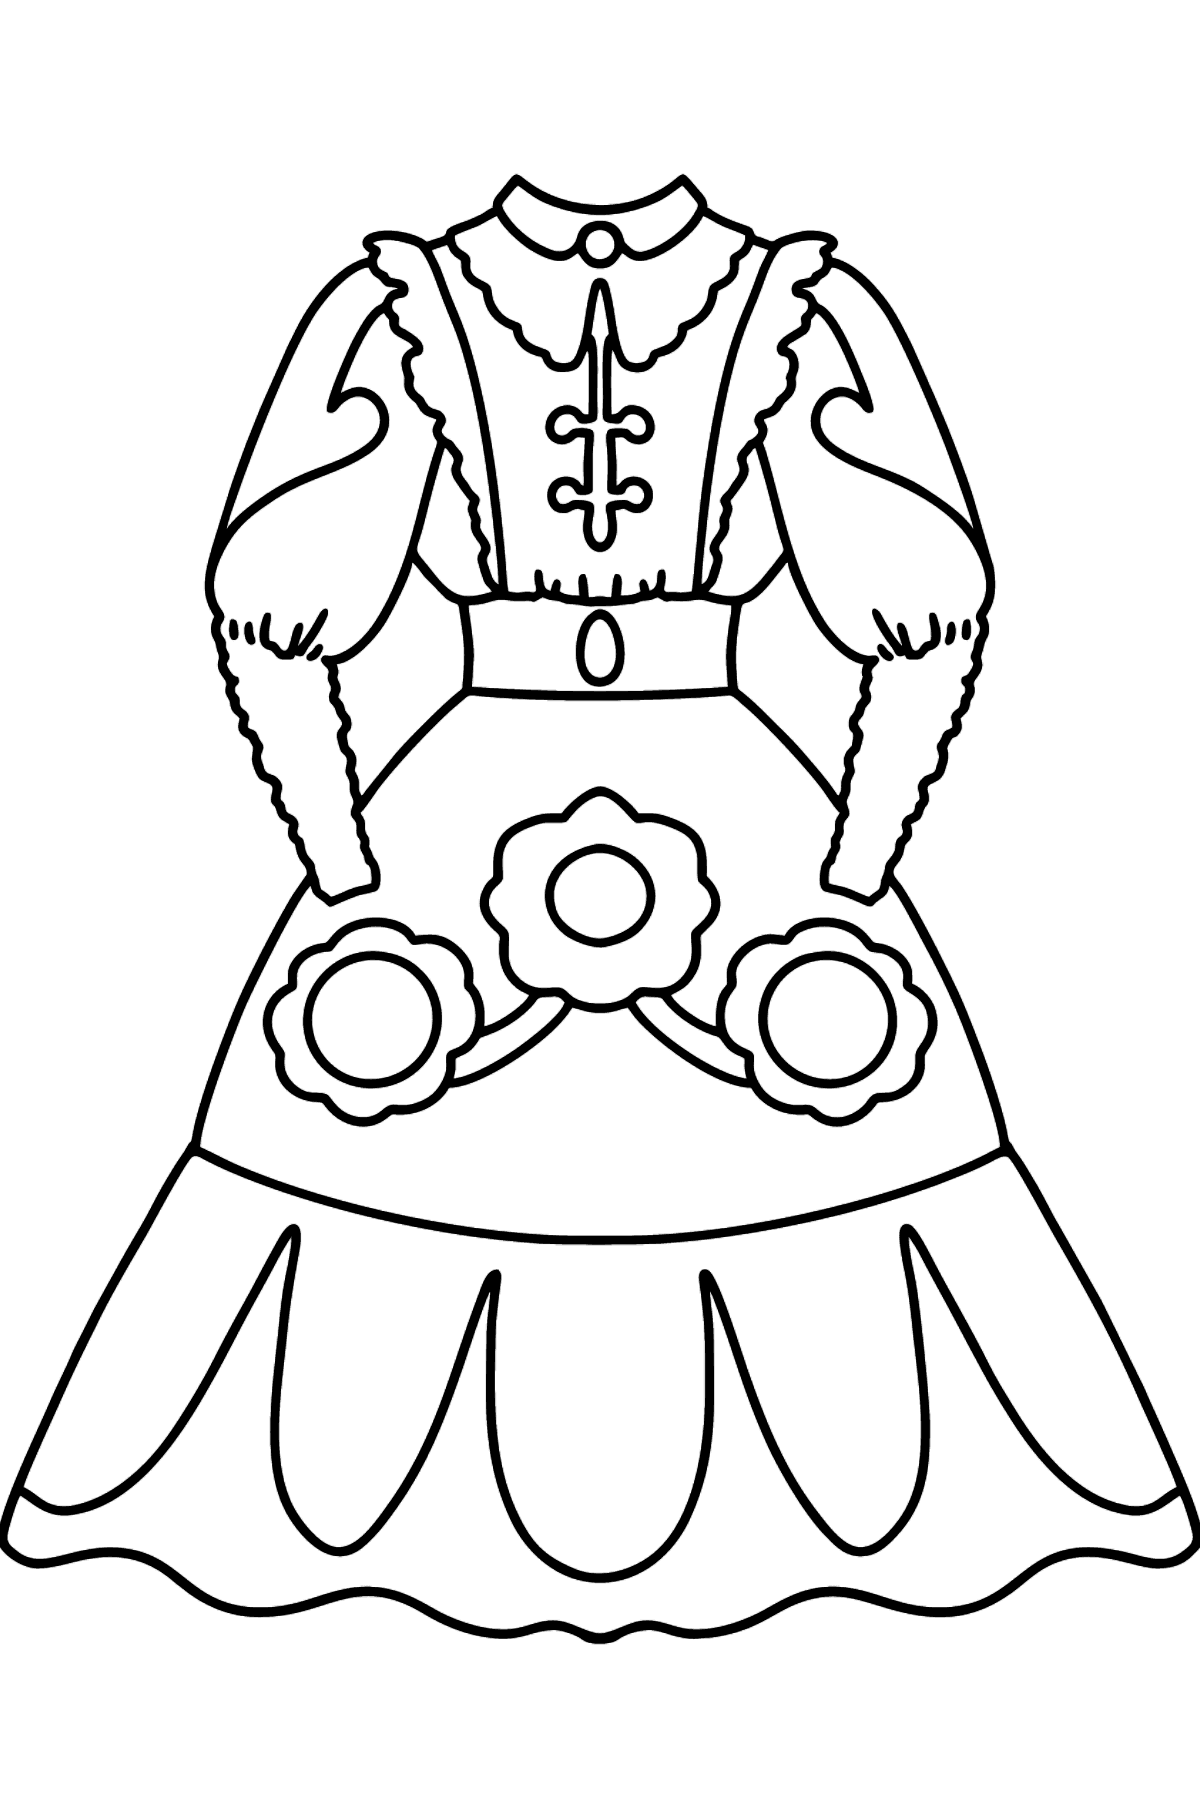 Coloring page with dress - Coloring Pages for Kids